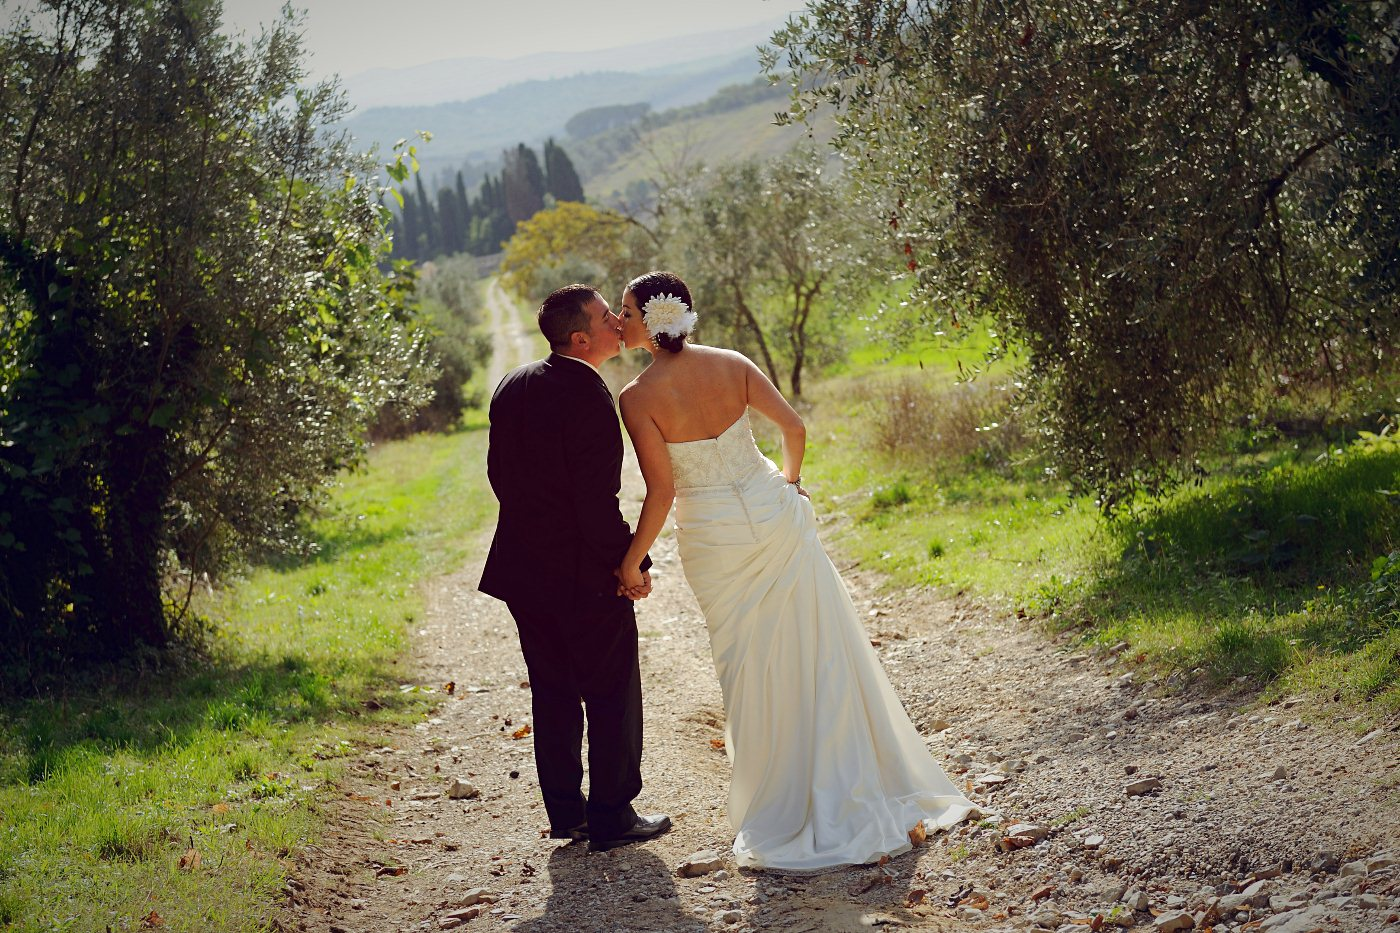 wedding photos tuscany_11.jpg